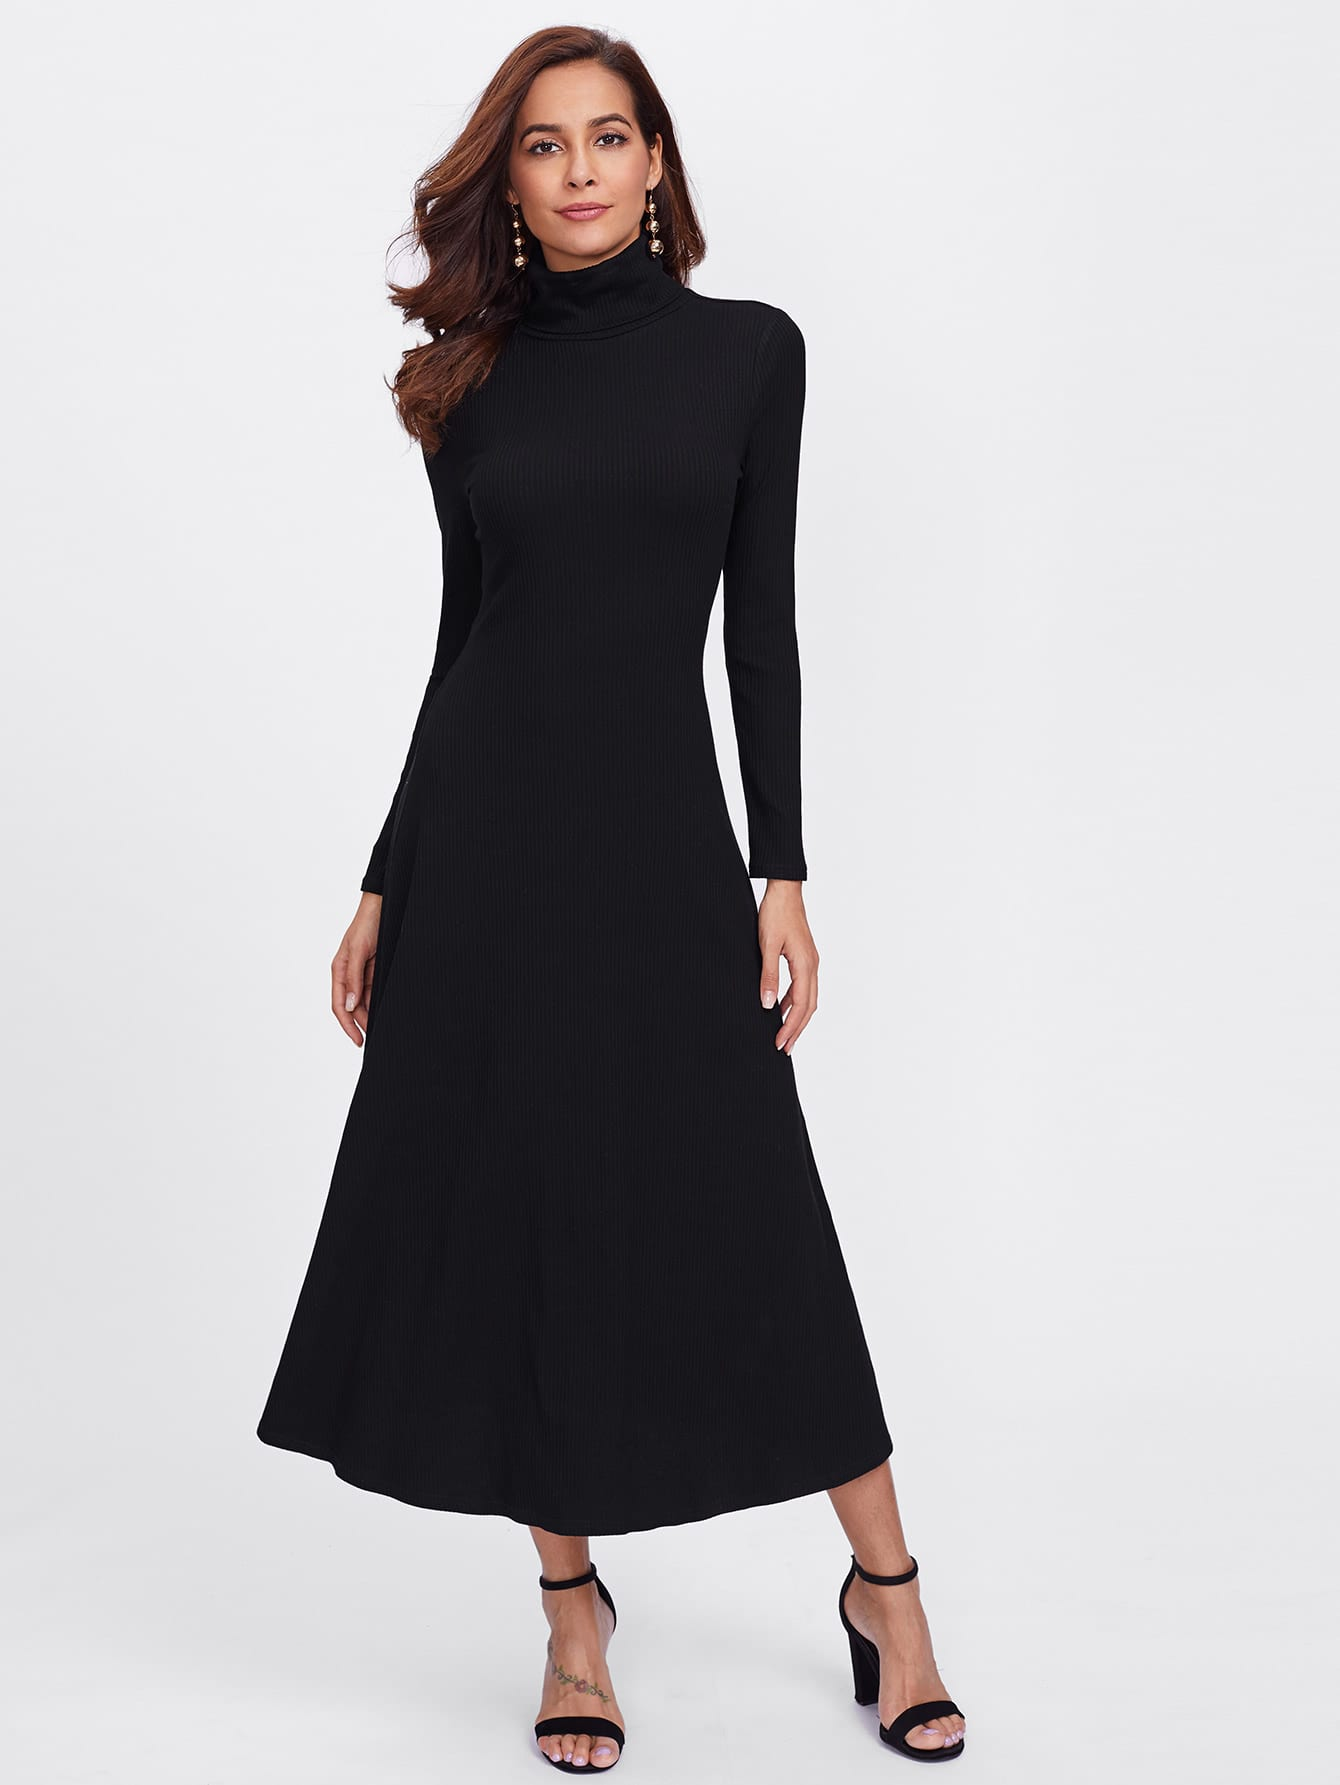 Turtleneck Rib Knit Dress rib knit off shoulder dress